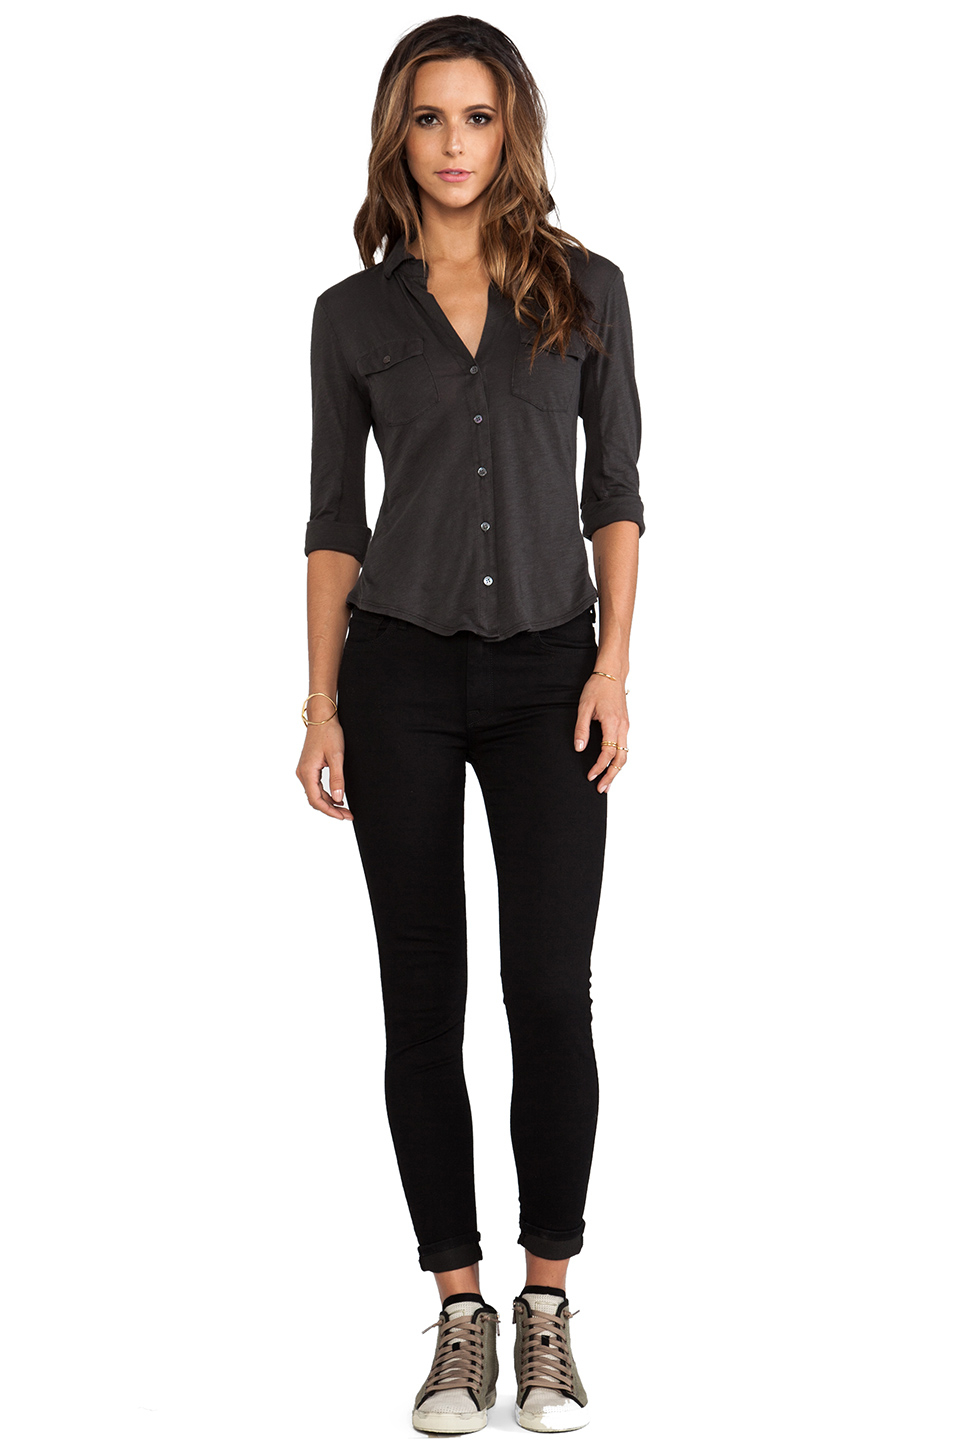 8ea39841a Lyst - James Perse Contrast Panel Shirt in Black